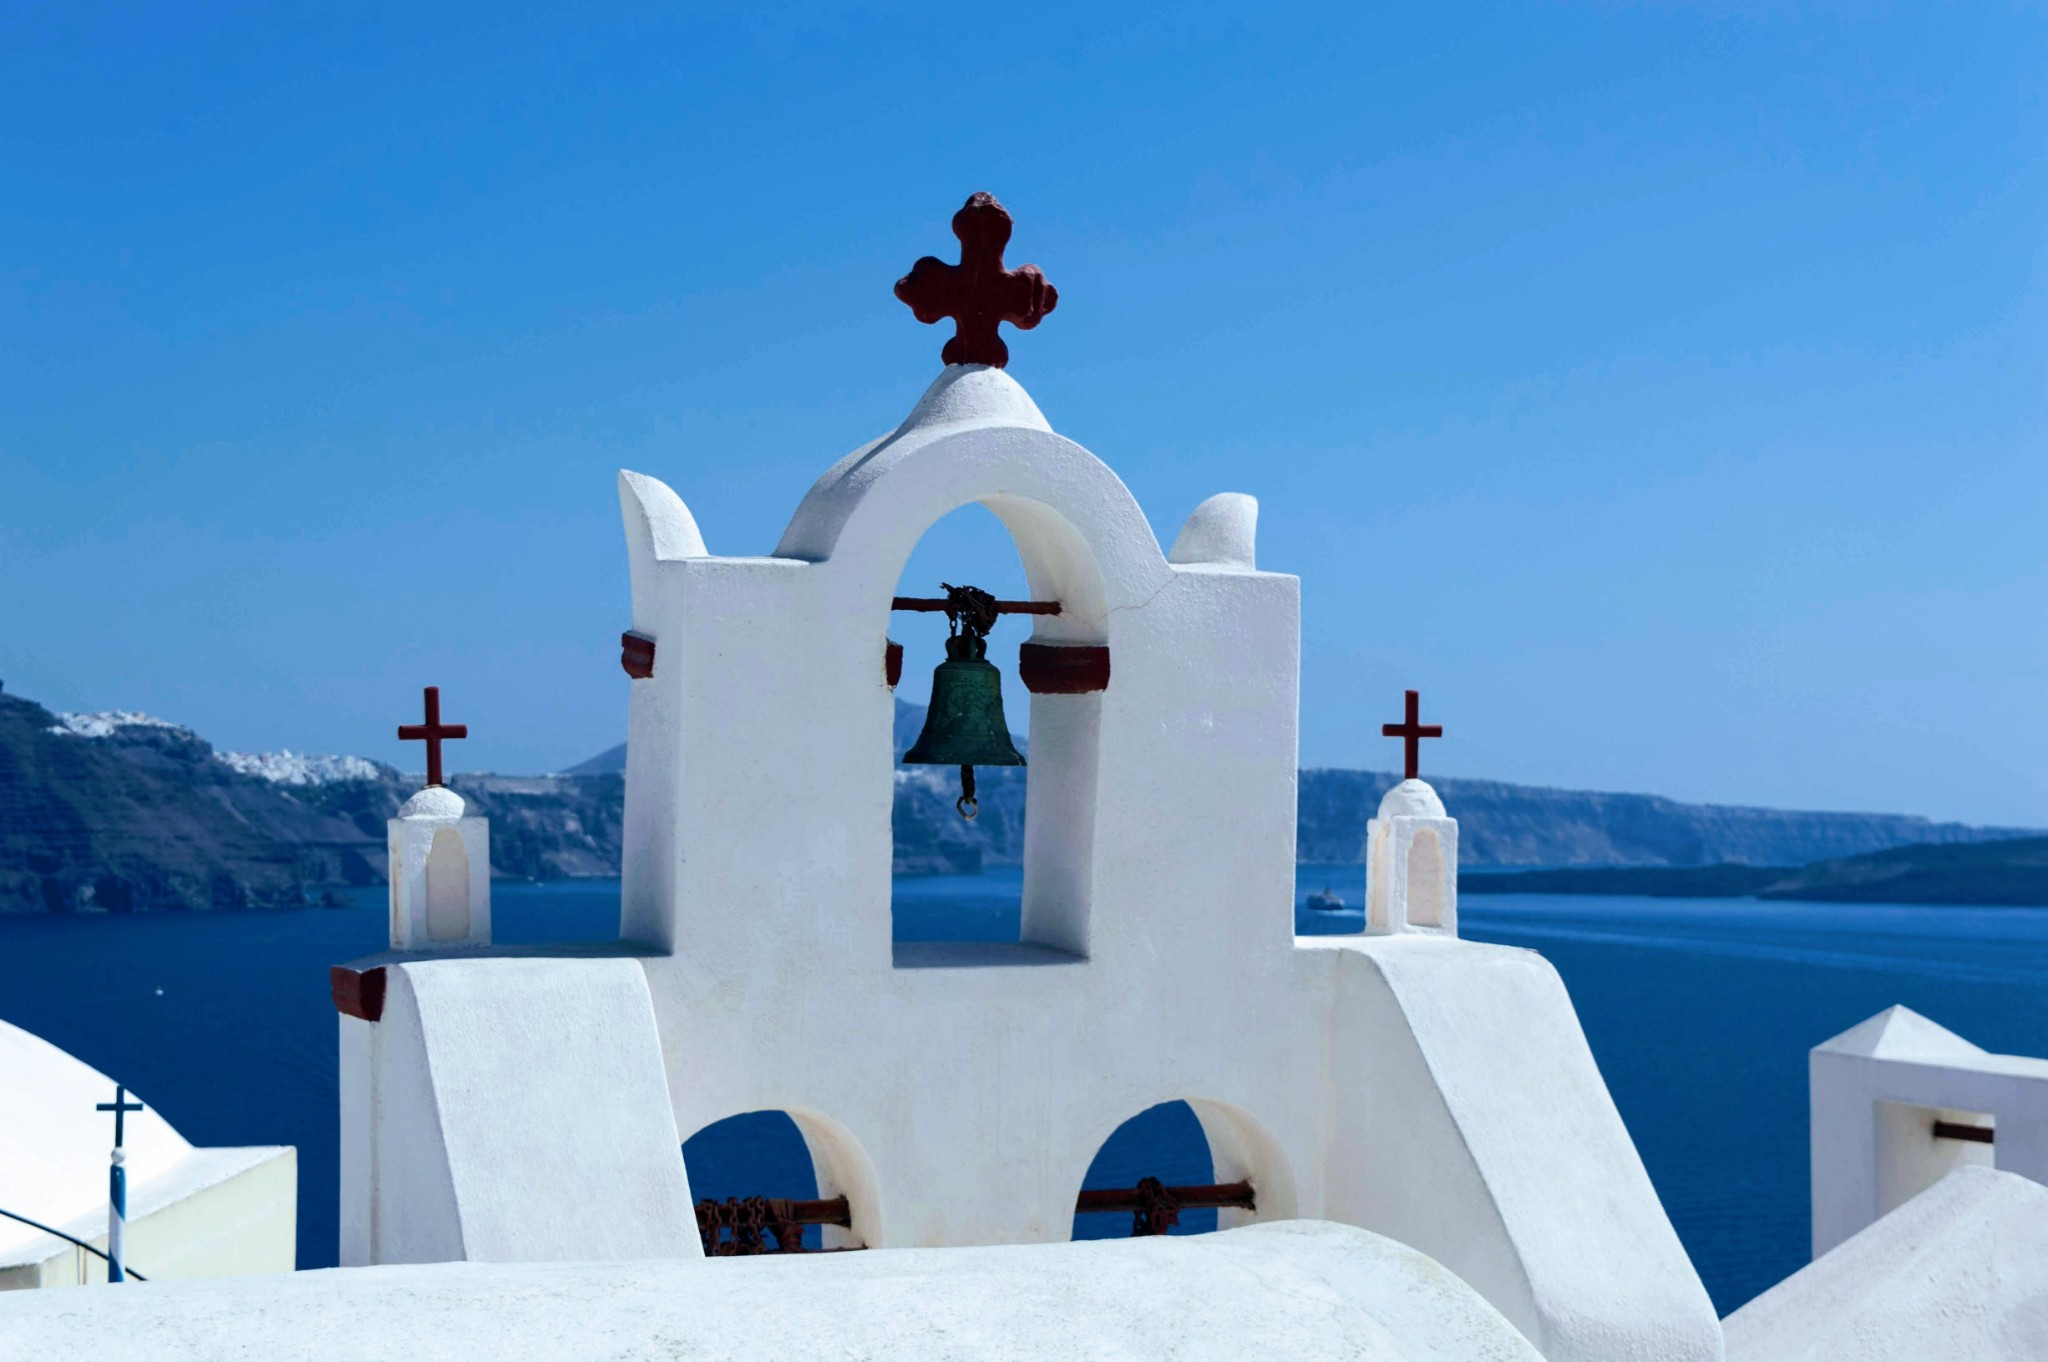 Oia Bell Church - Honeymoon Part 2 - Oia in Santorini Greece is beautiful with its pretty caldera view, sunsets, windmills and quaint pedestrian streets, we headed here for our Honeymoon Part 2! - Greek Island, Europe - Veritru